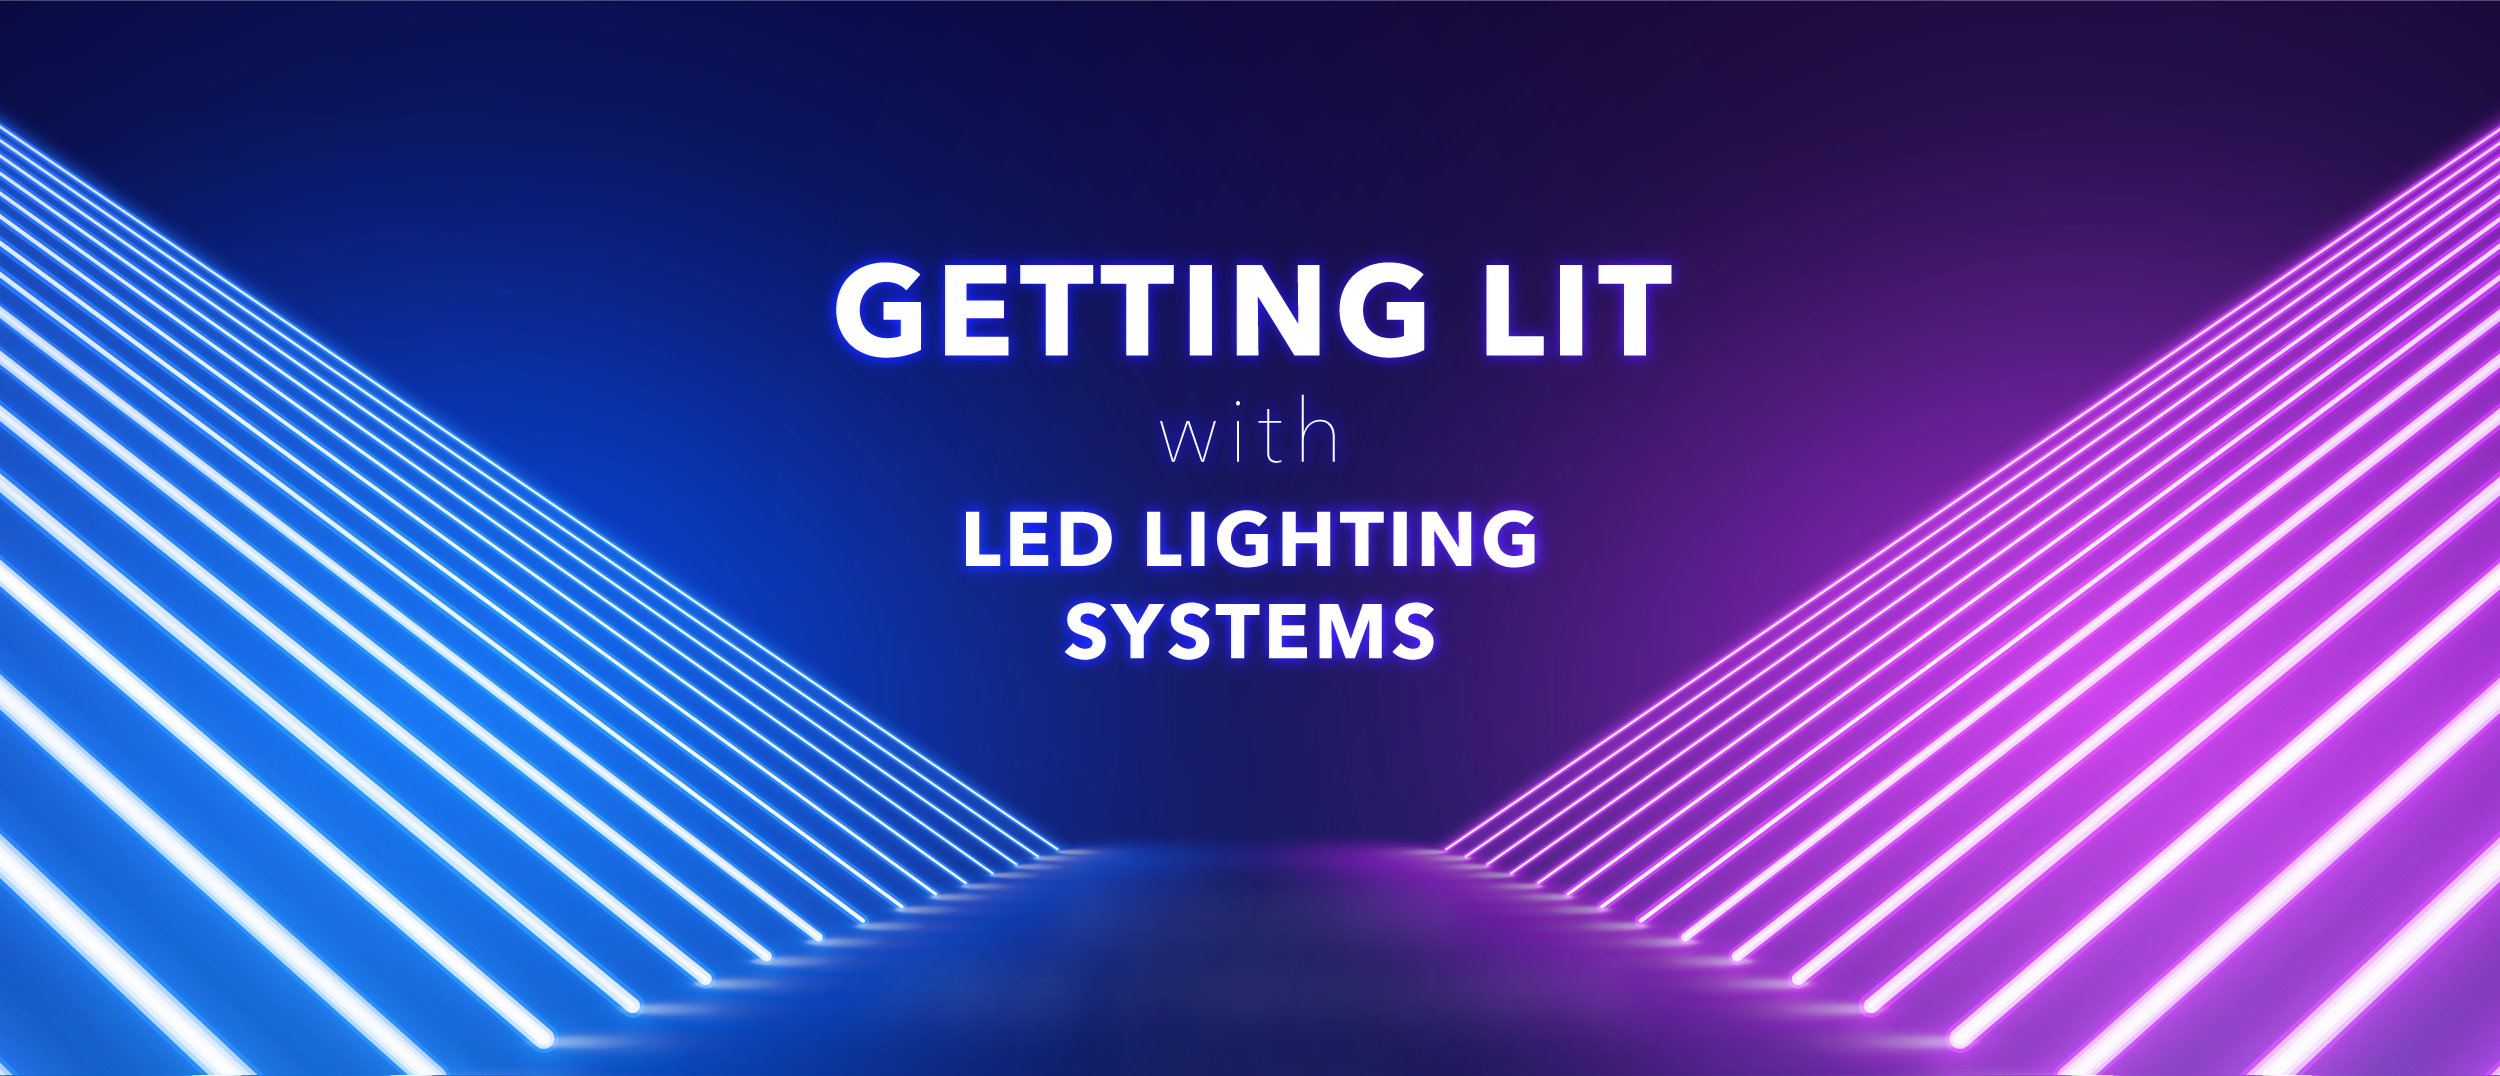 Getting Lit with LED Lighting Systems